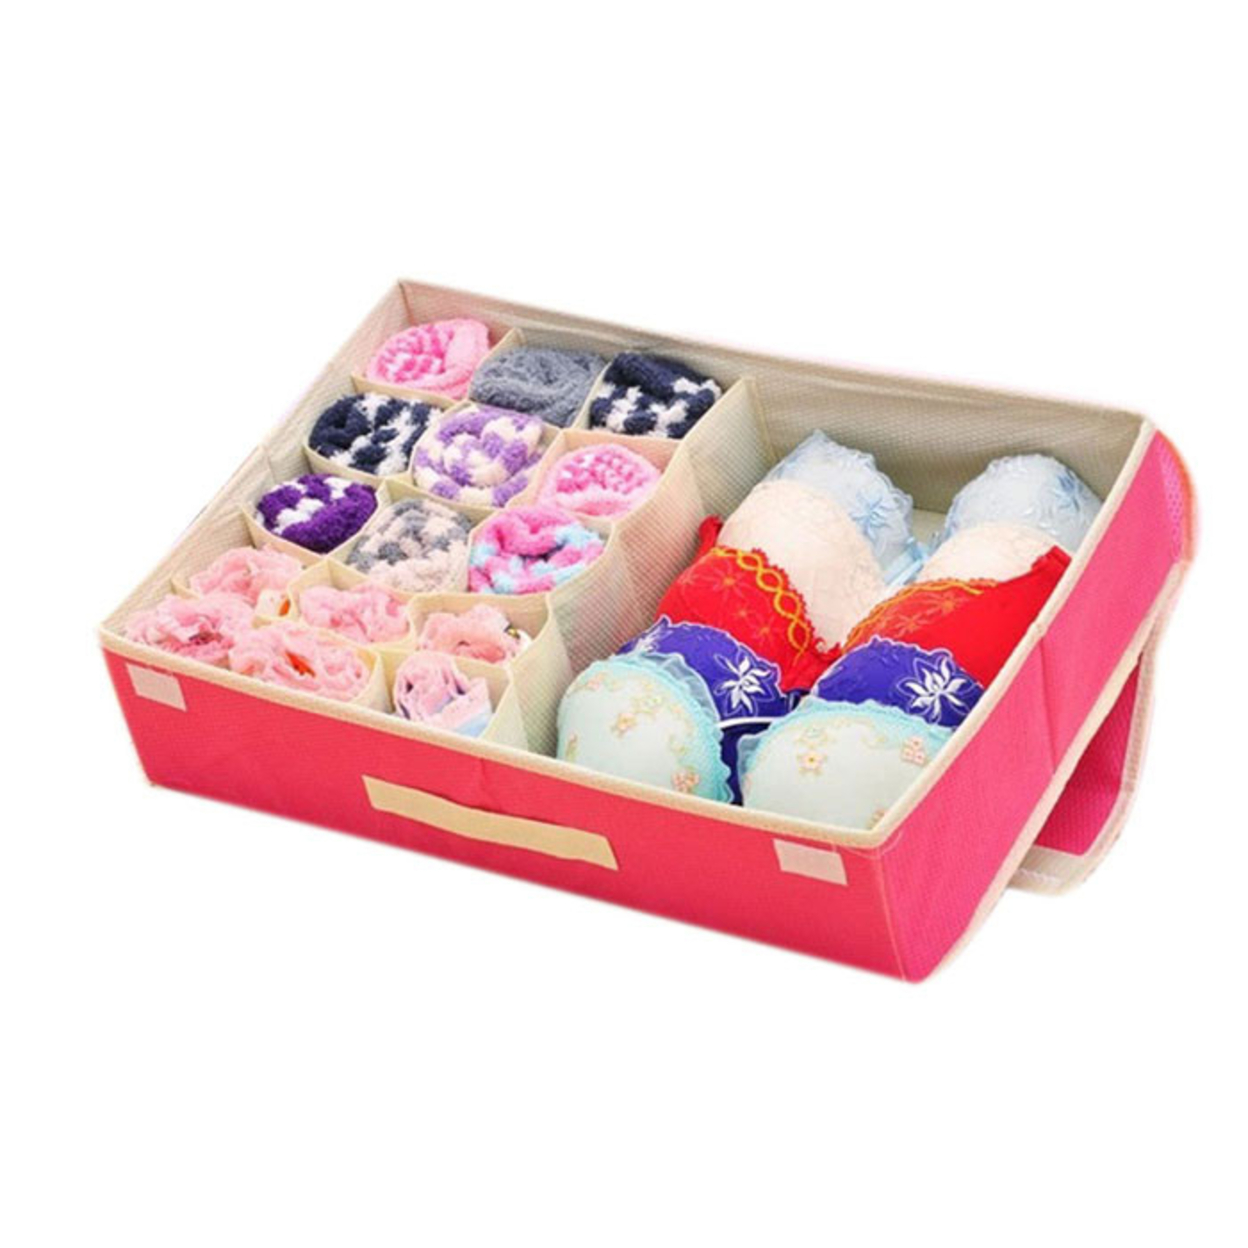 2015 Non-woven Two-in-one Storage Box For Underwear Bra Socks Ties Finishing Box